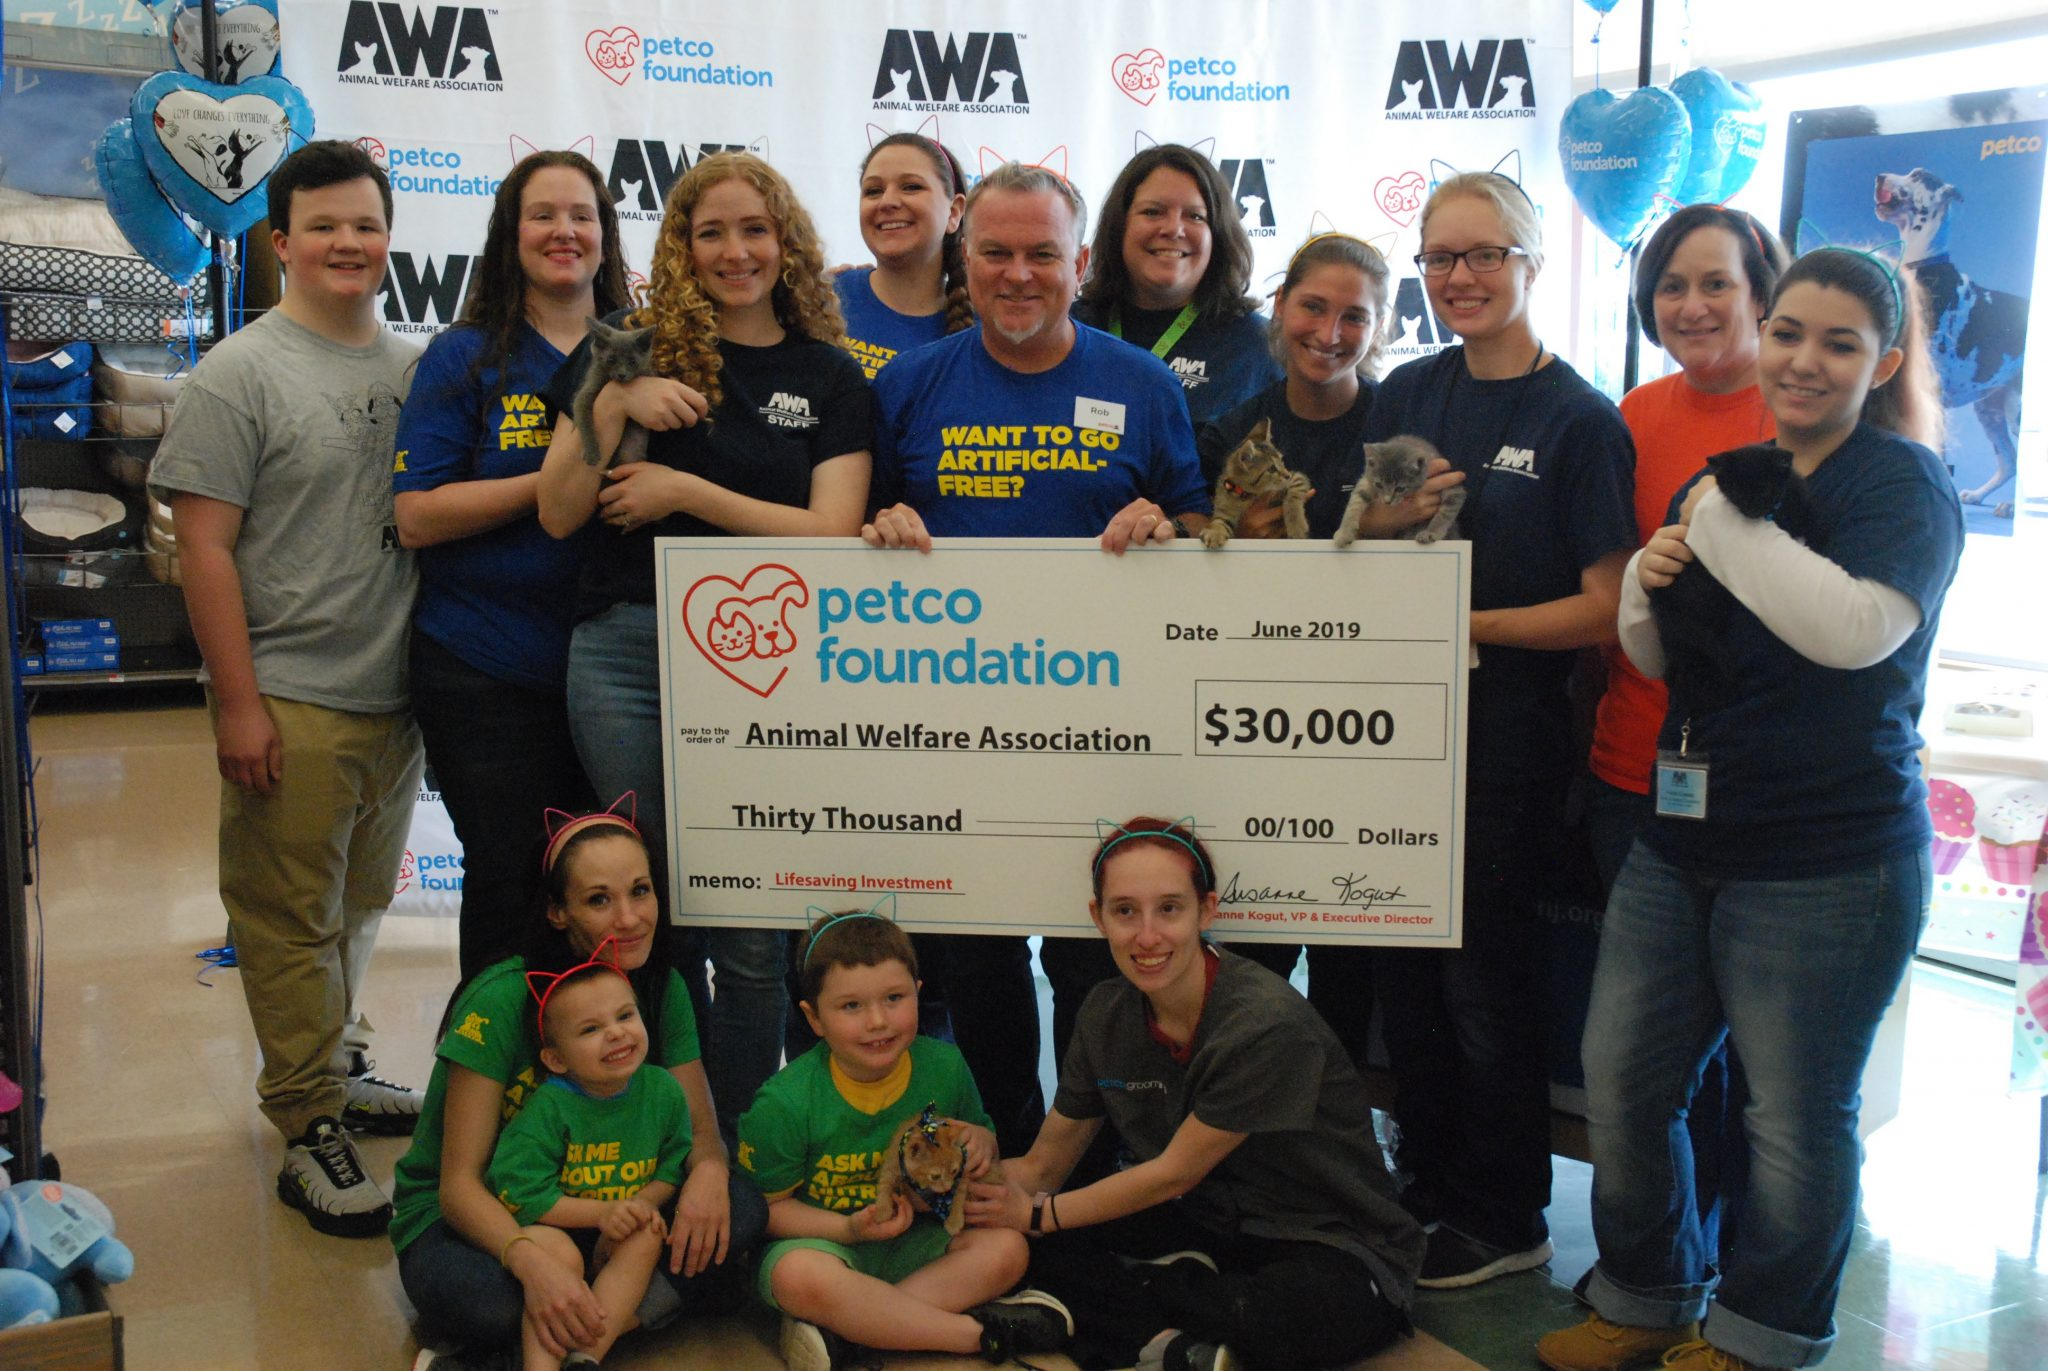 Awa Receives Grant Kicks Off Adoption Event The Sun Newspapers